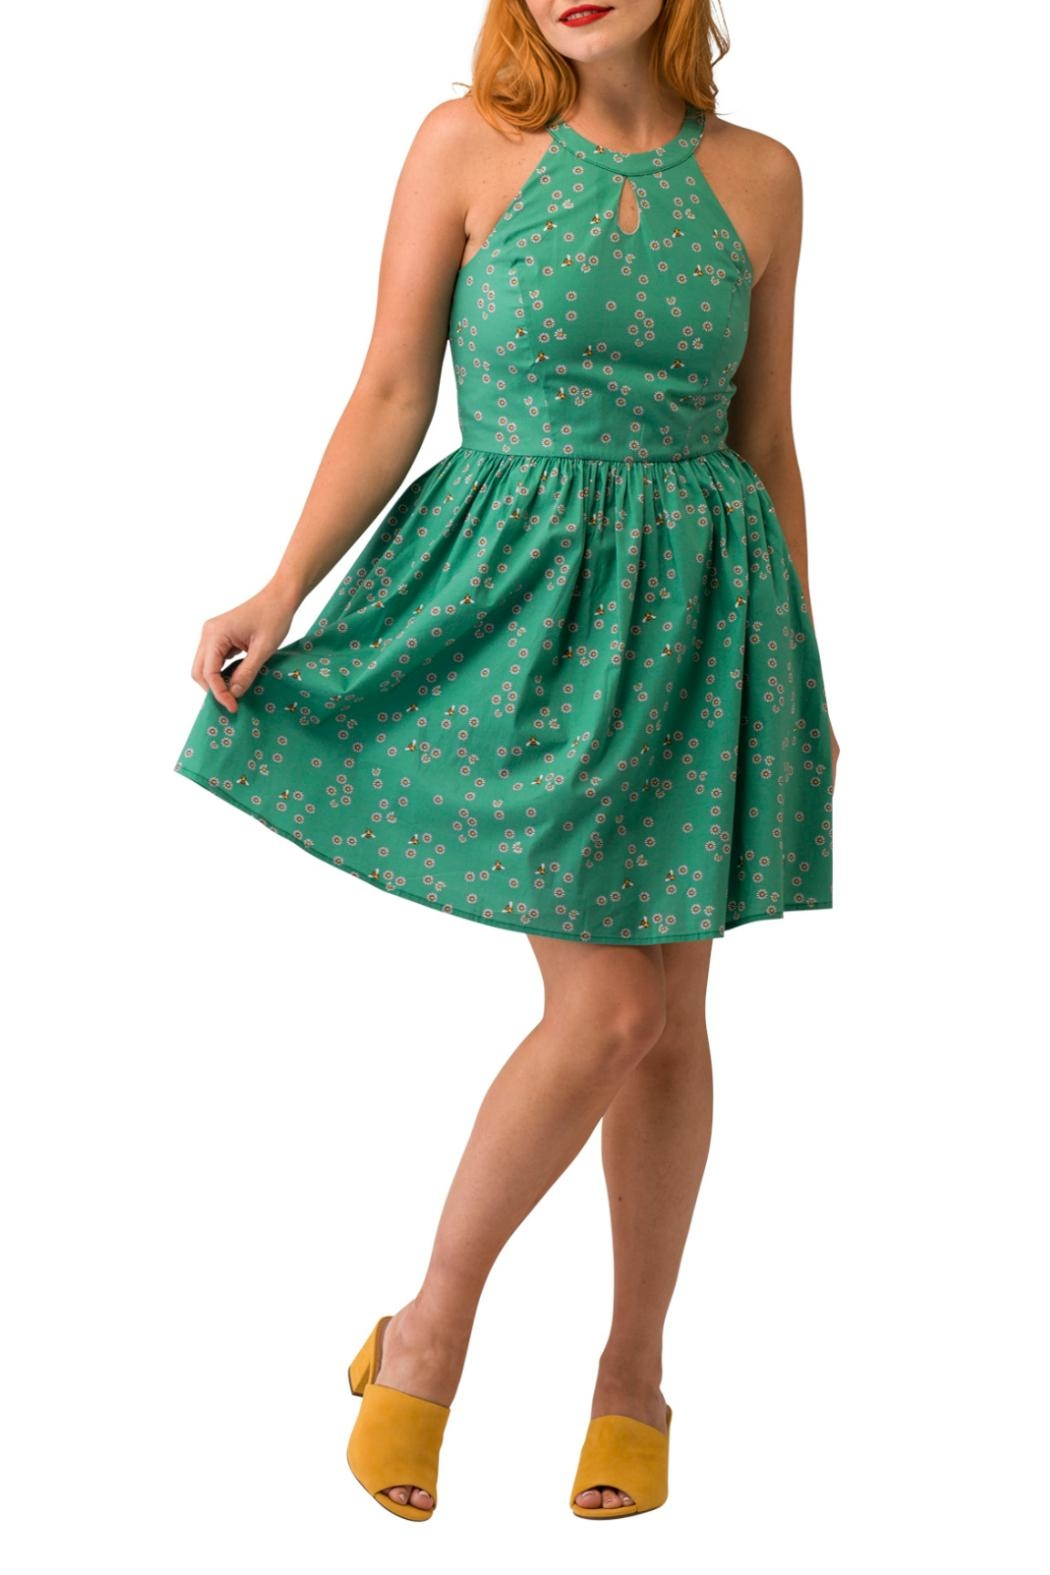 Smak Parlour Bee & Daisy Dress - Side Cropped Image